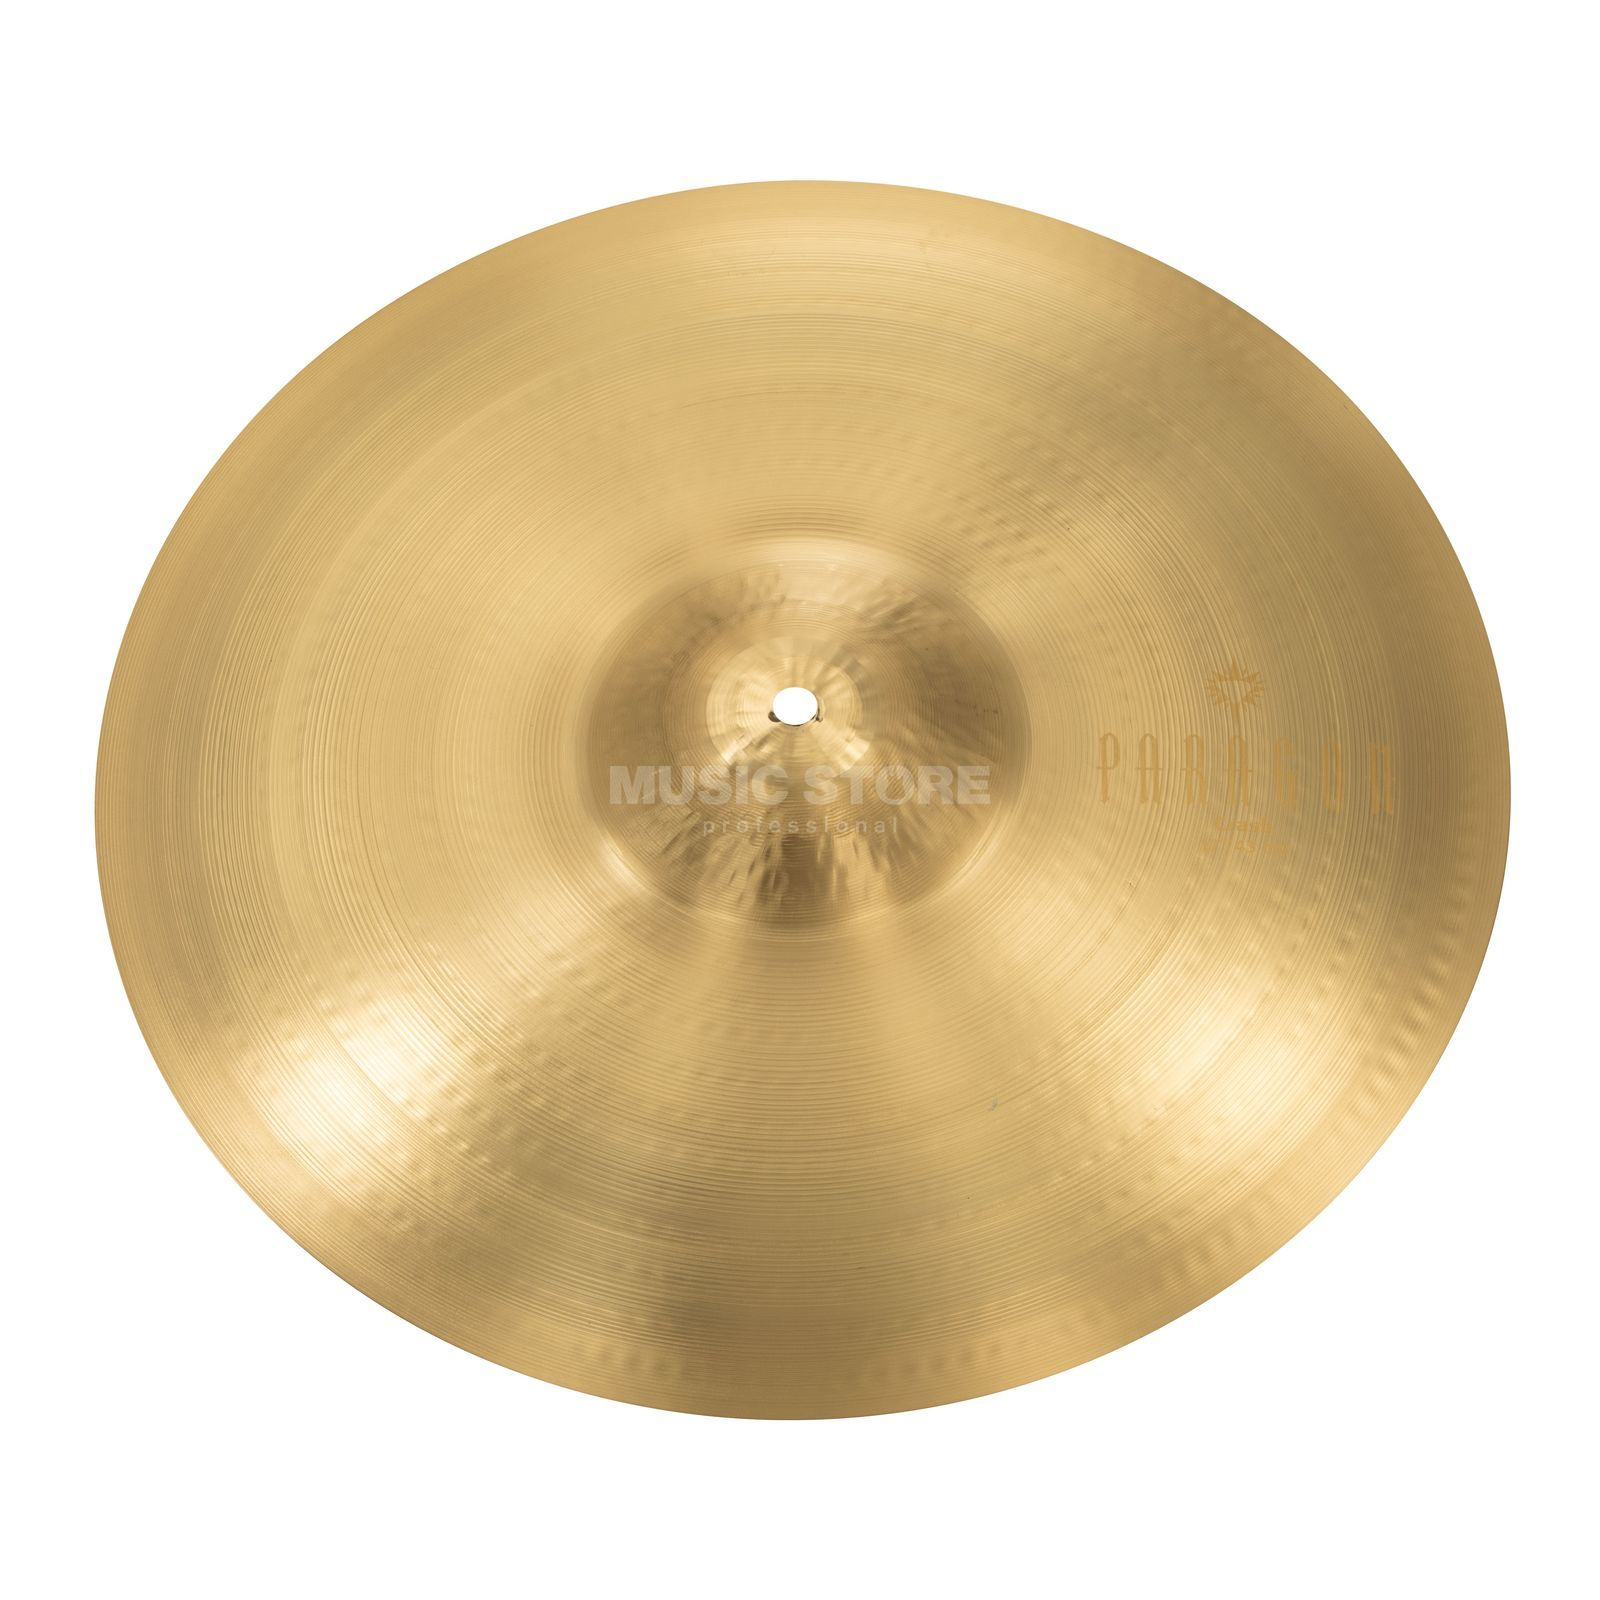 "Sabian Paragon Crash 17"" Product Image"